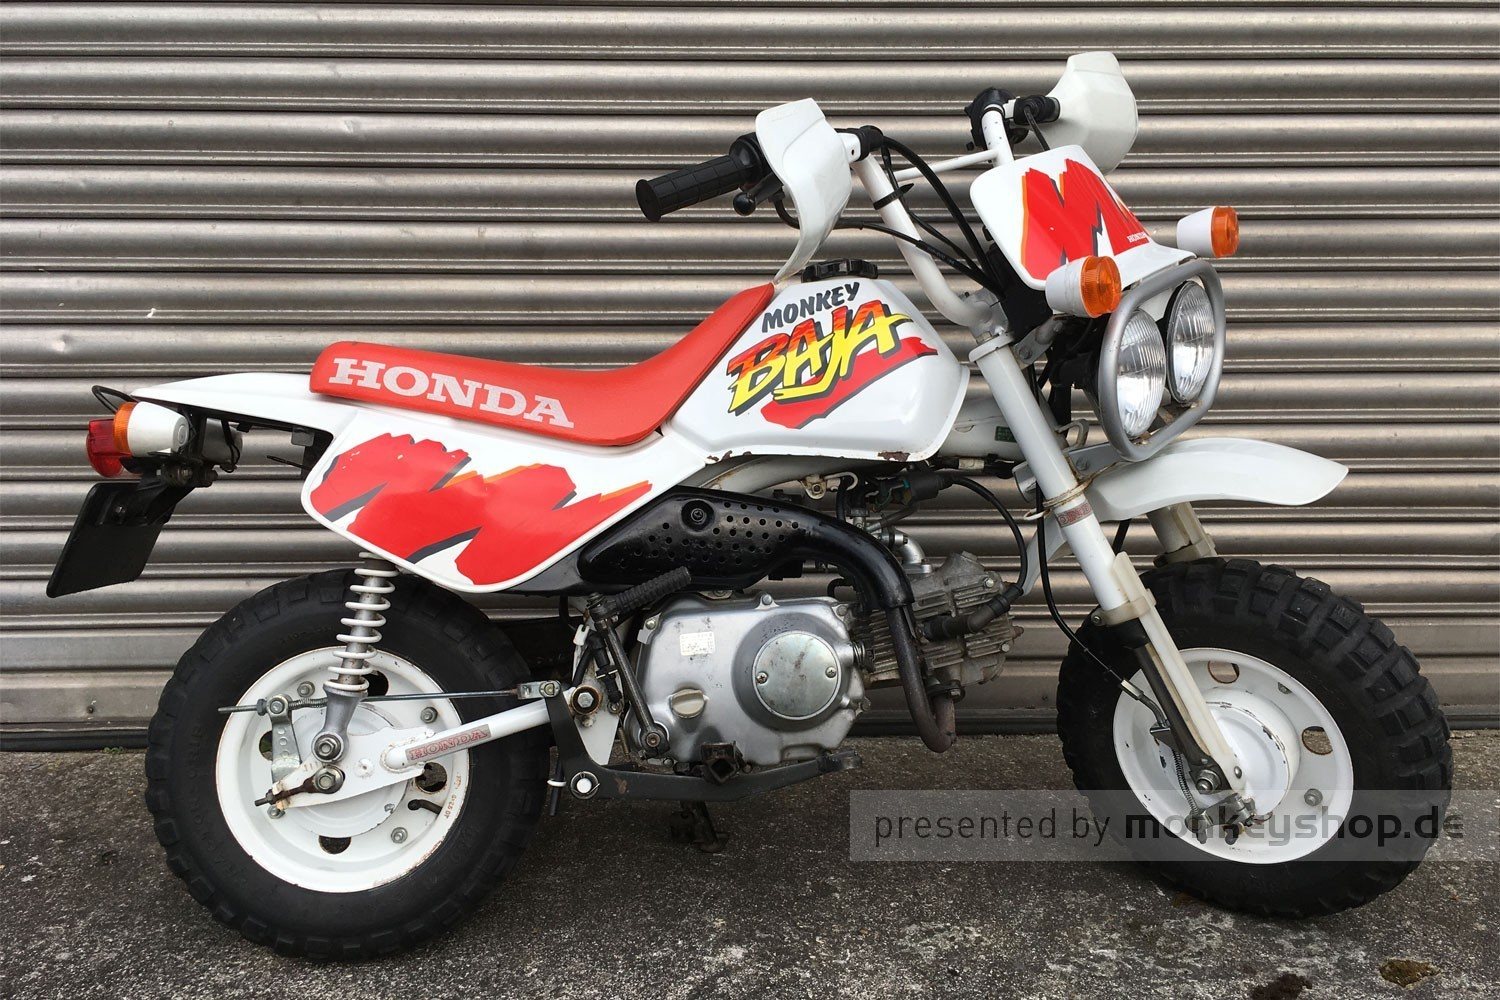 honda monkey z50 baja 50 cc mokick bj 1991 2095 km. Black Bedroom Furniture Sets. Home Design Ideas